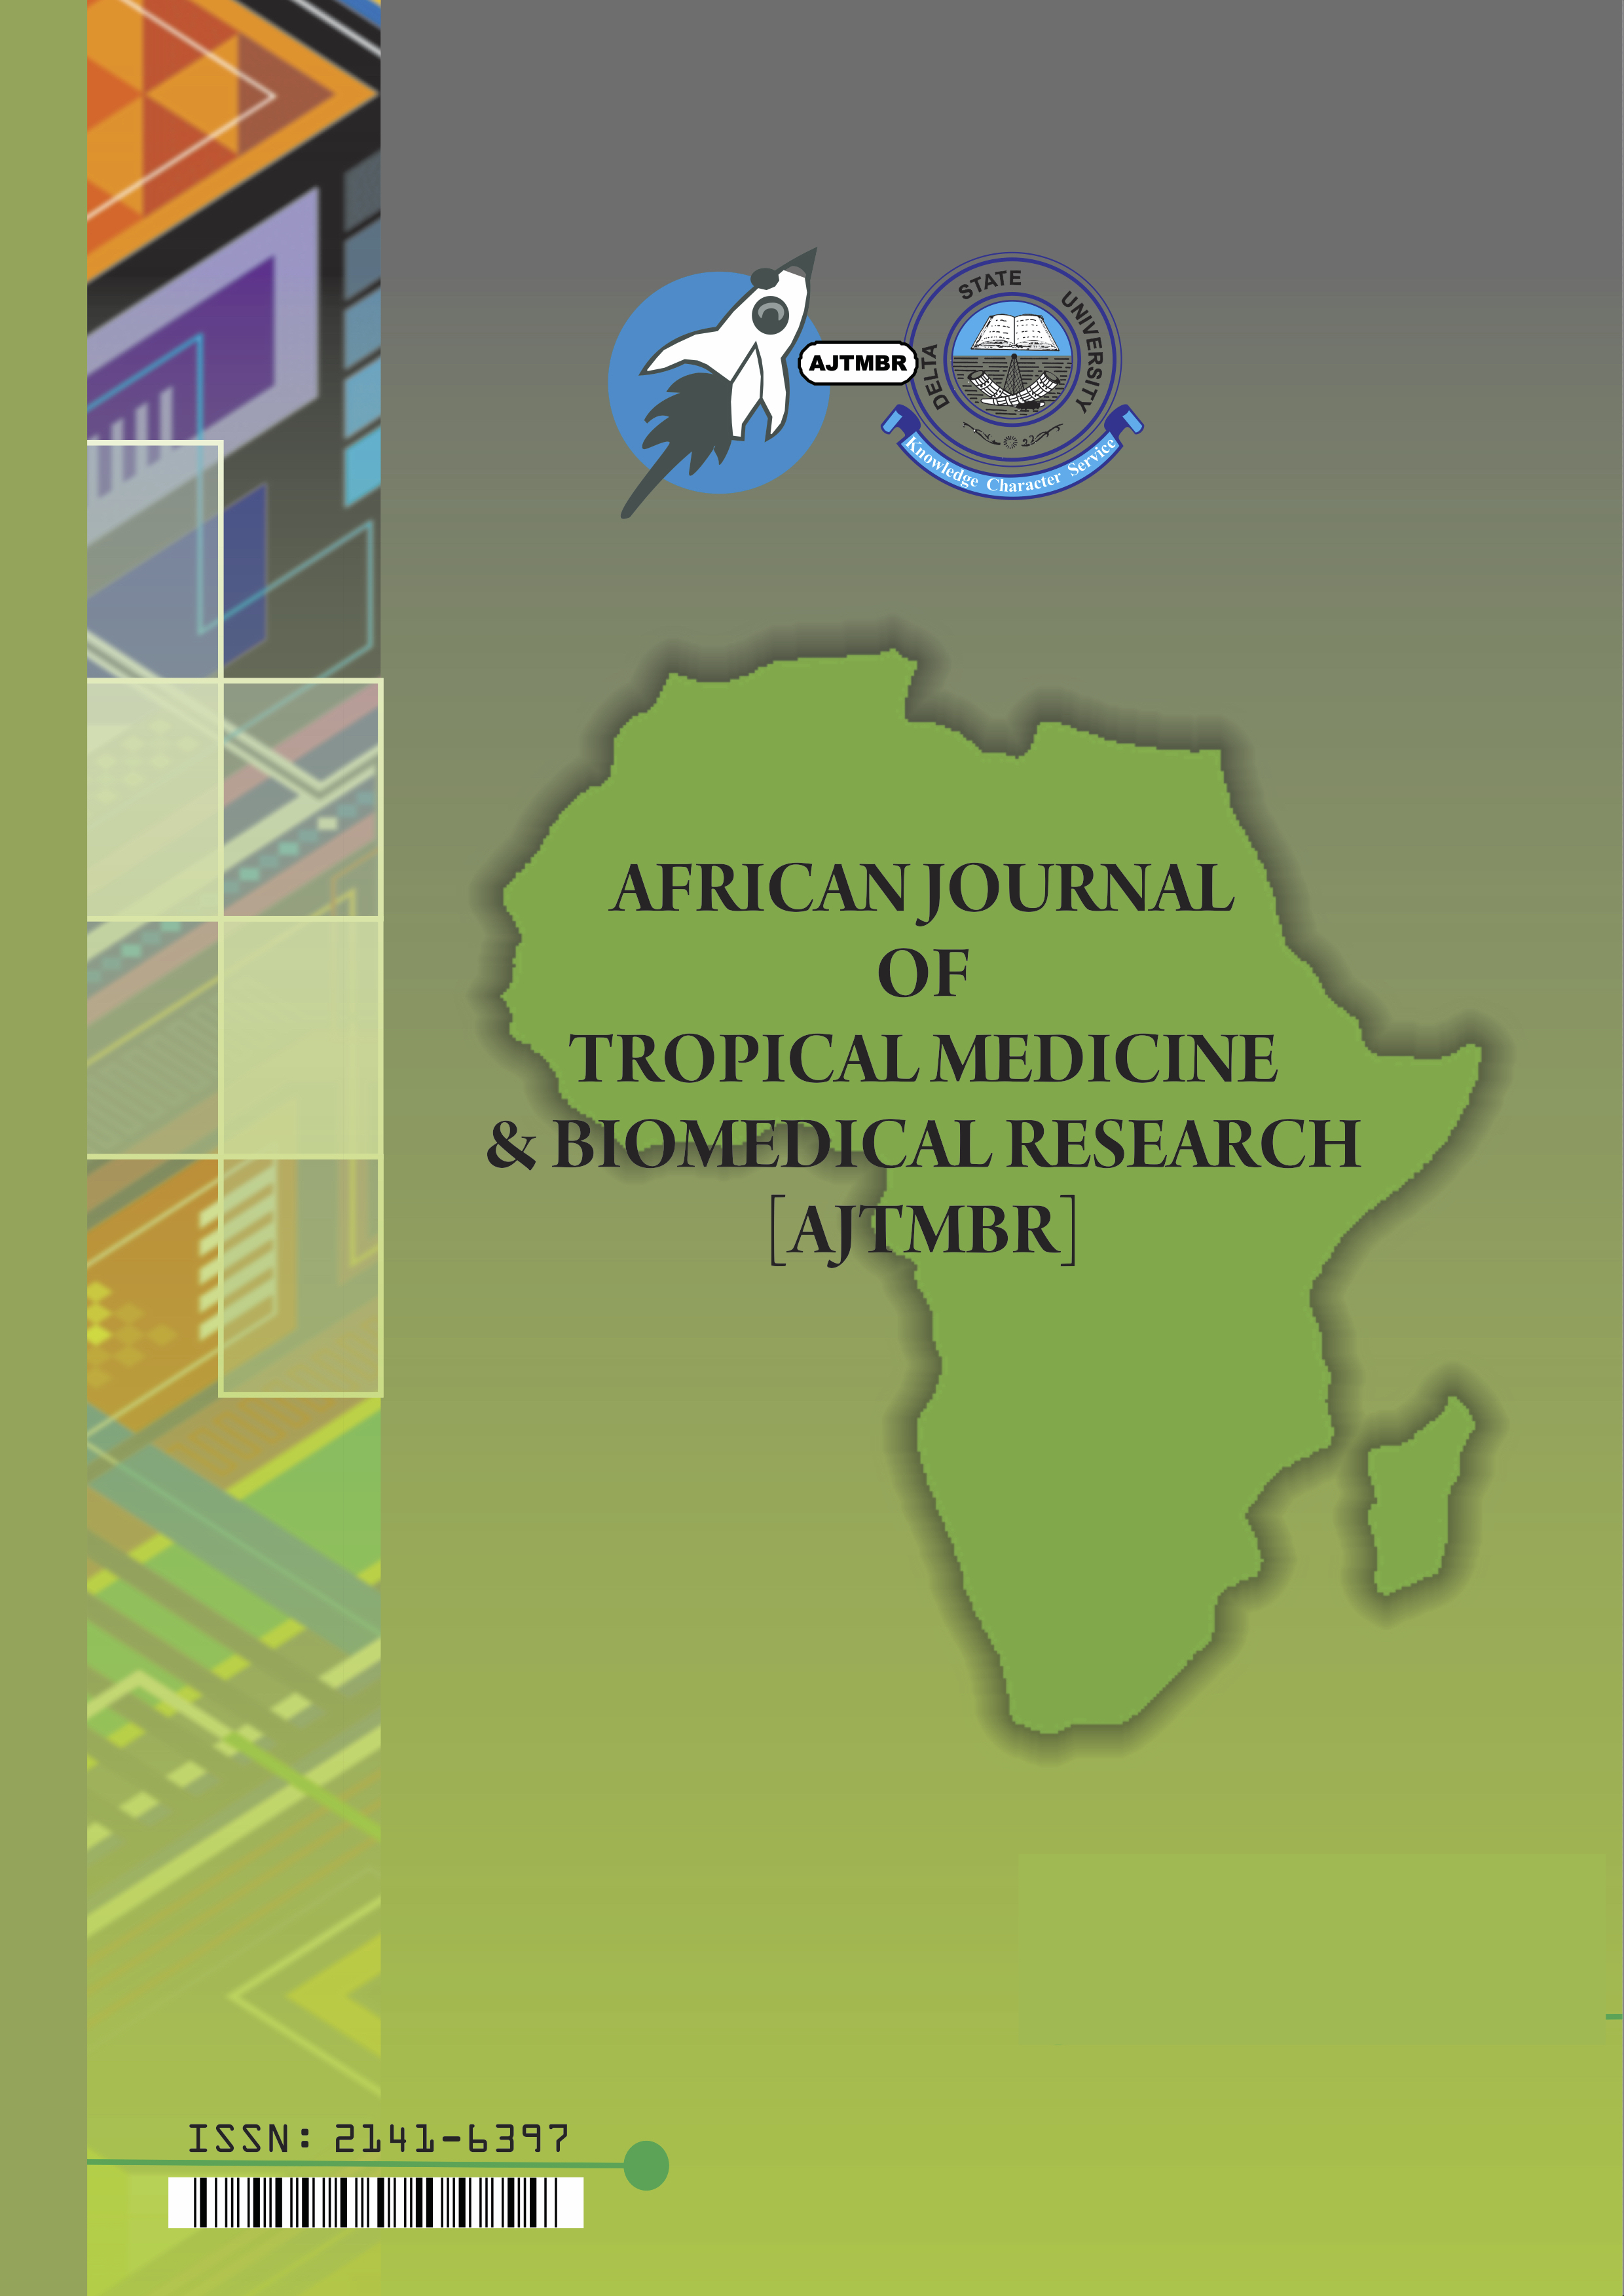 View Vol. 4 No. 2: African Journal of Tropical Medicine and Biomedical Research; September 2019